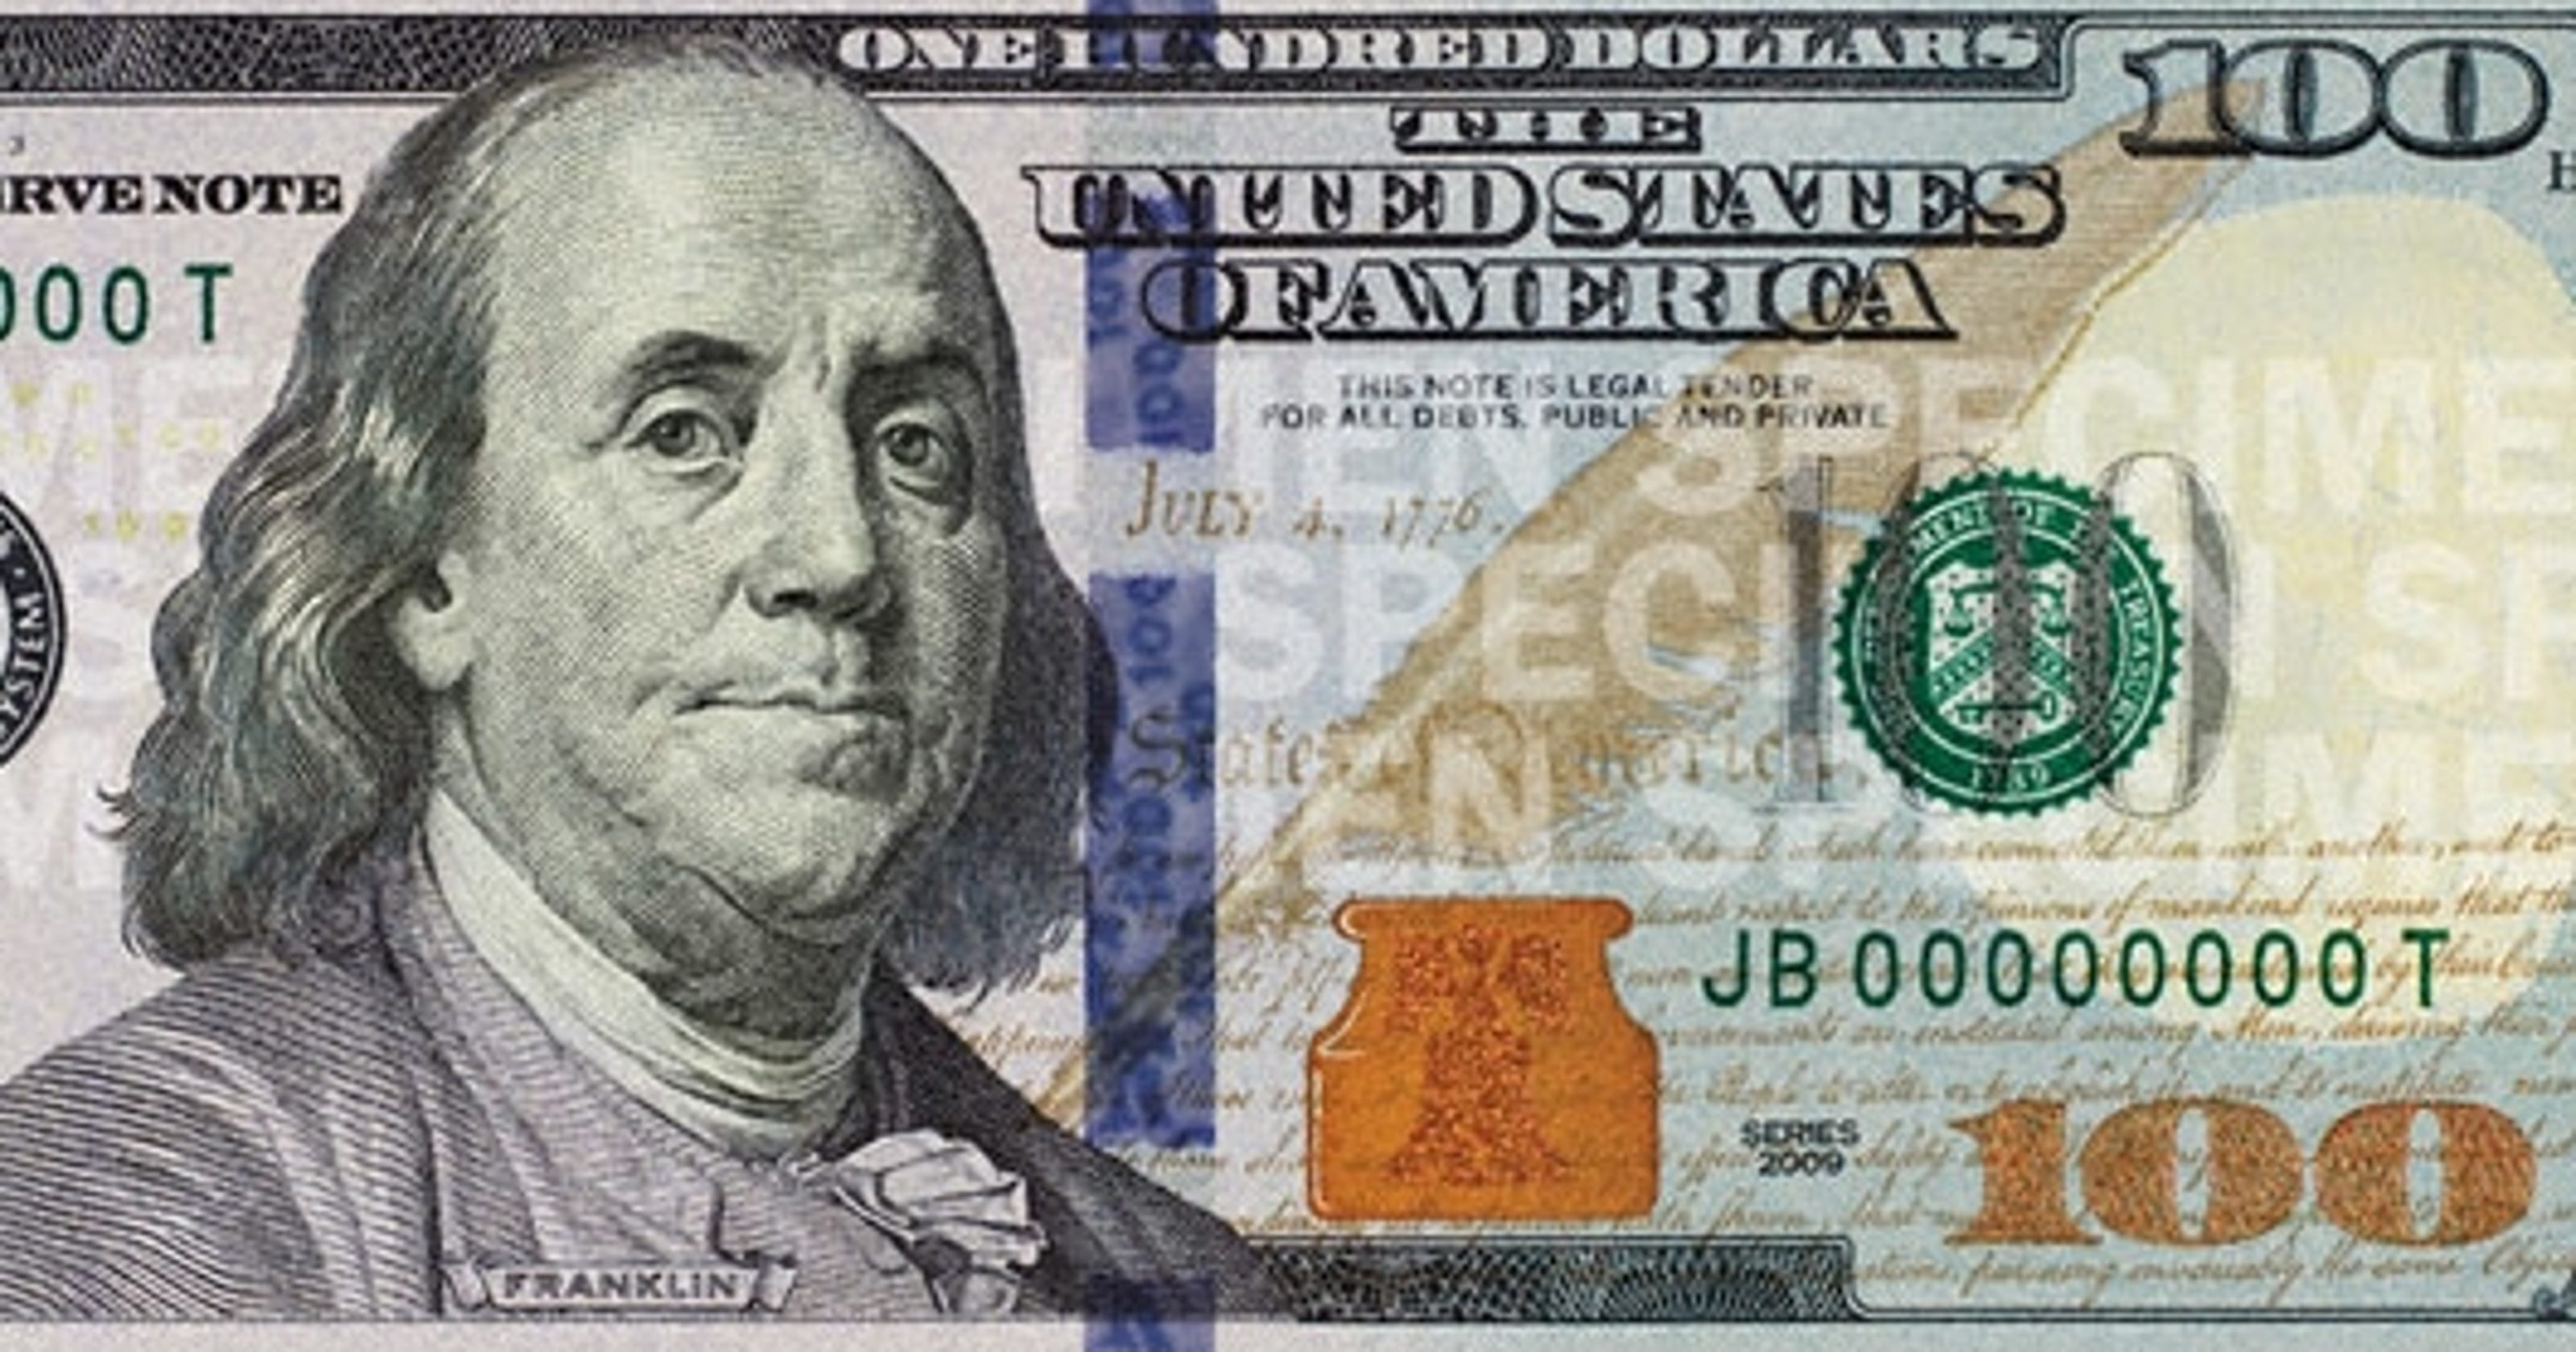 New currency out Tuesday: 411 on the new $100